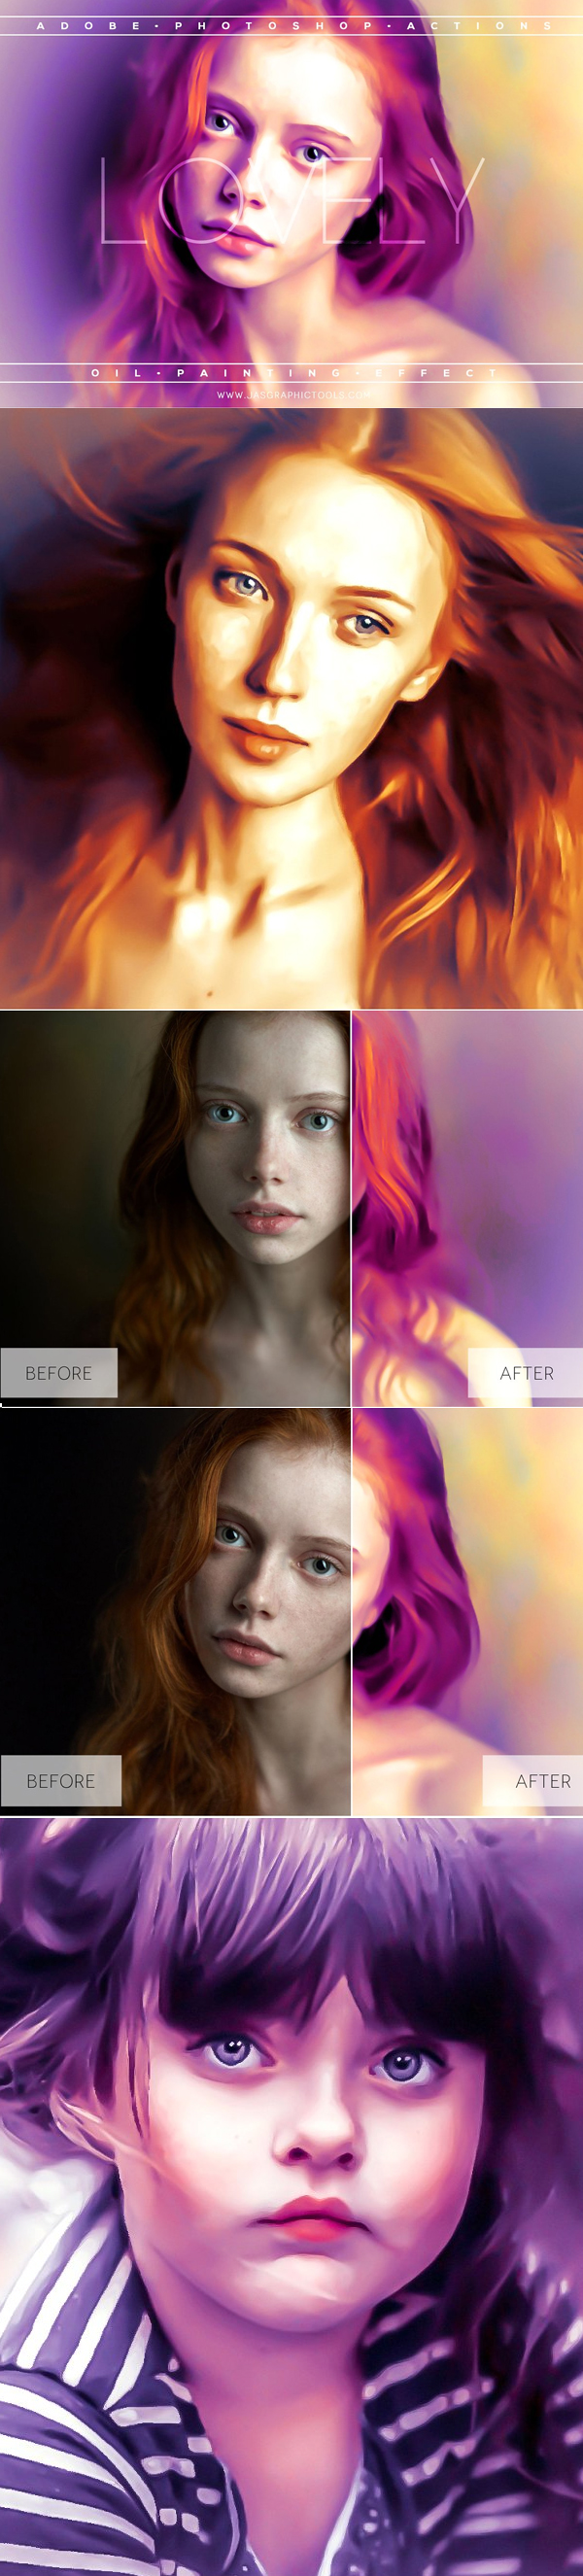 Lovely Oil Painting Effect Actions